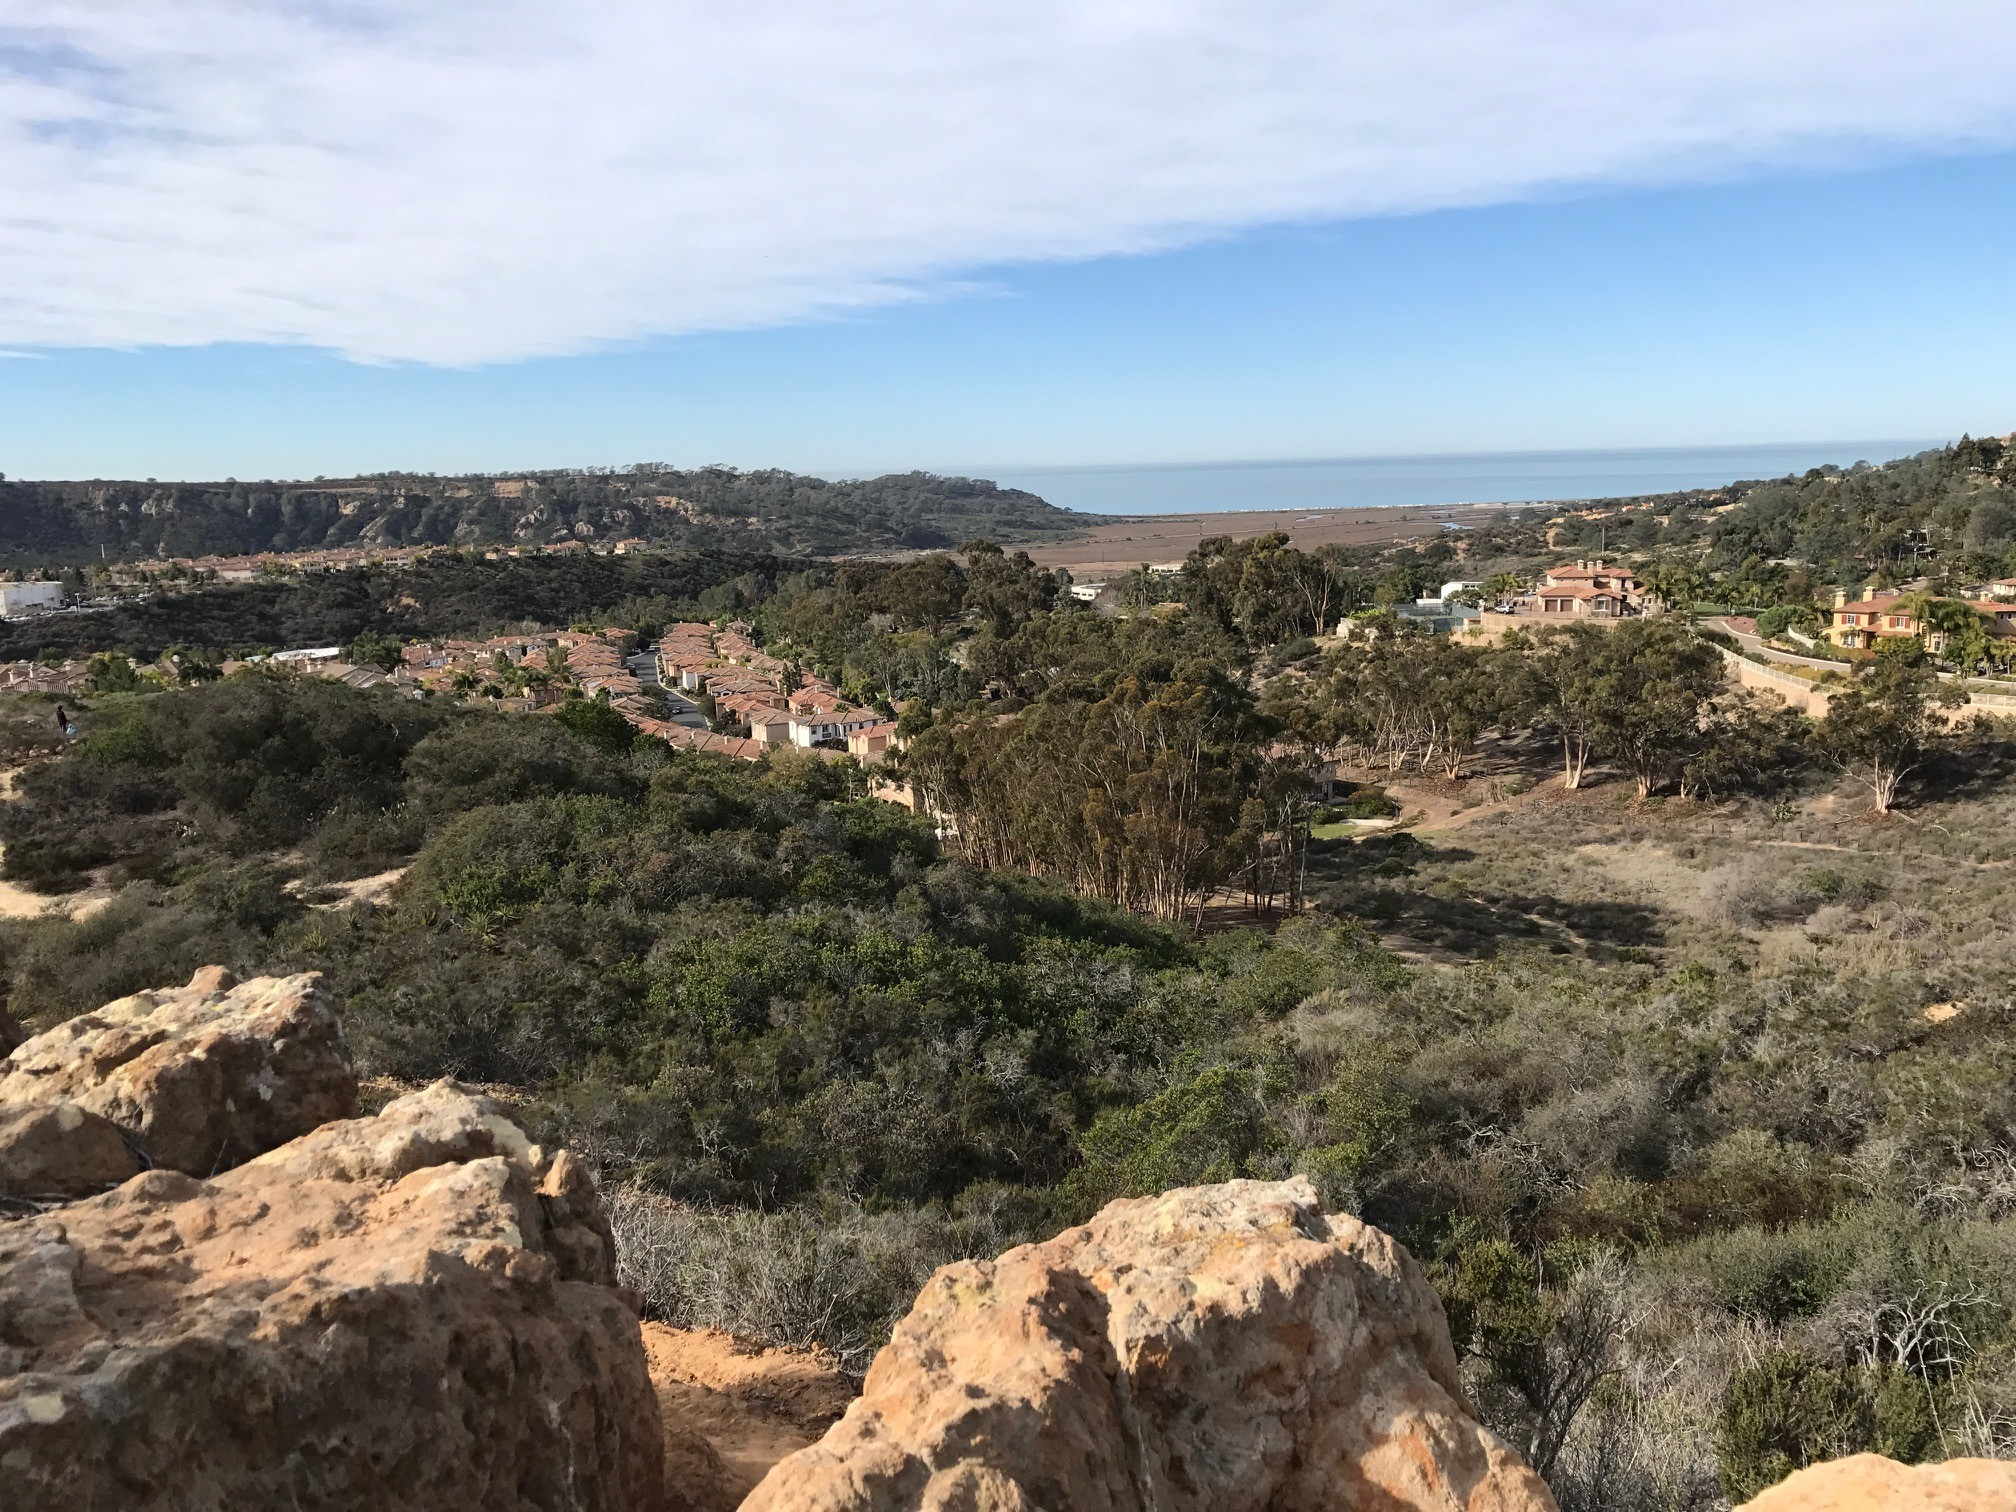 A view from atop the Carmel Mountain Preserve.